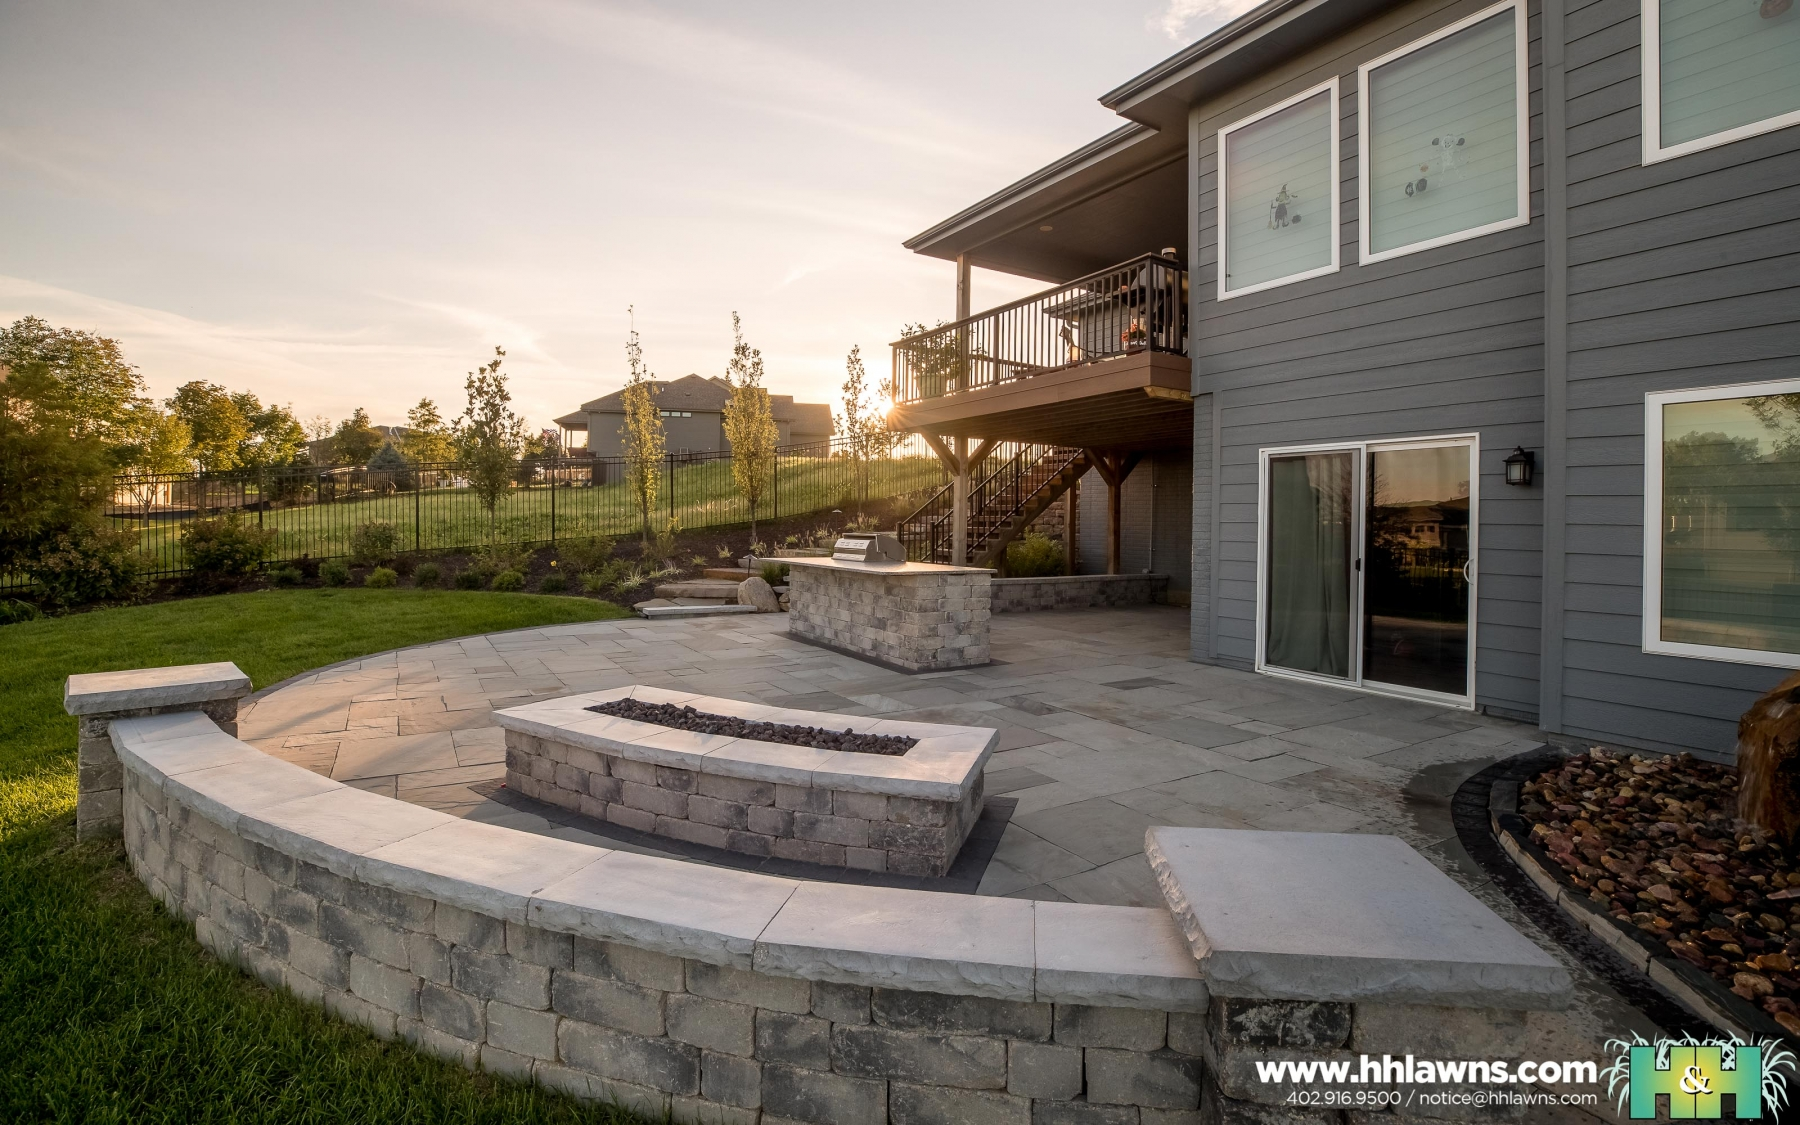 092419 Coughlin Omaha Landscape Company H&H Lawn and Landscape Omaha, Nebraska Created By // Nathan Olsen